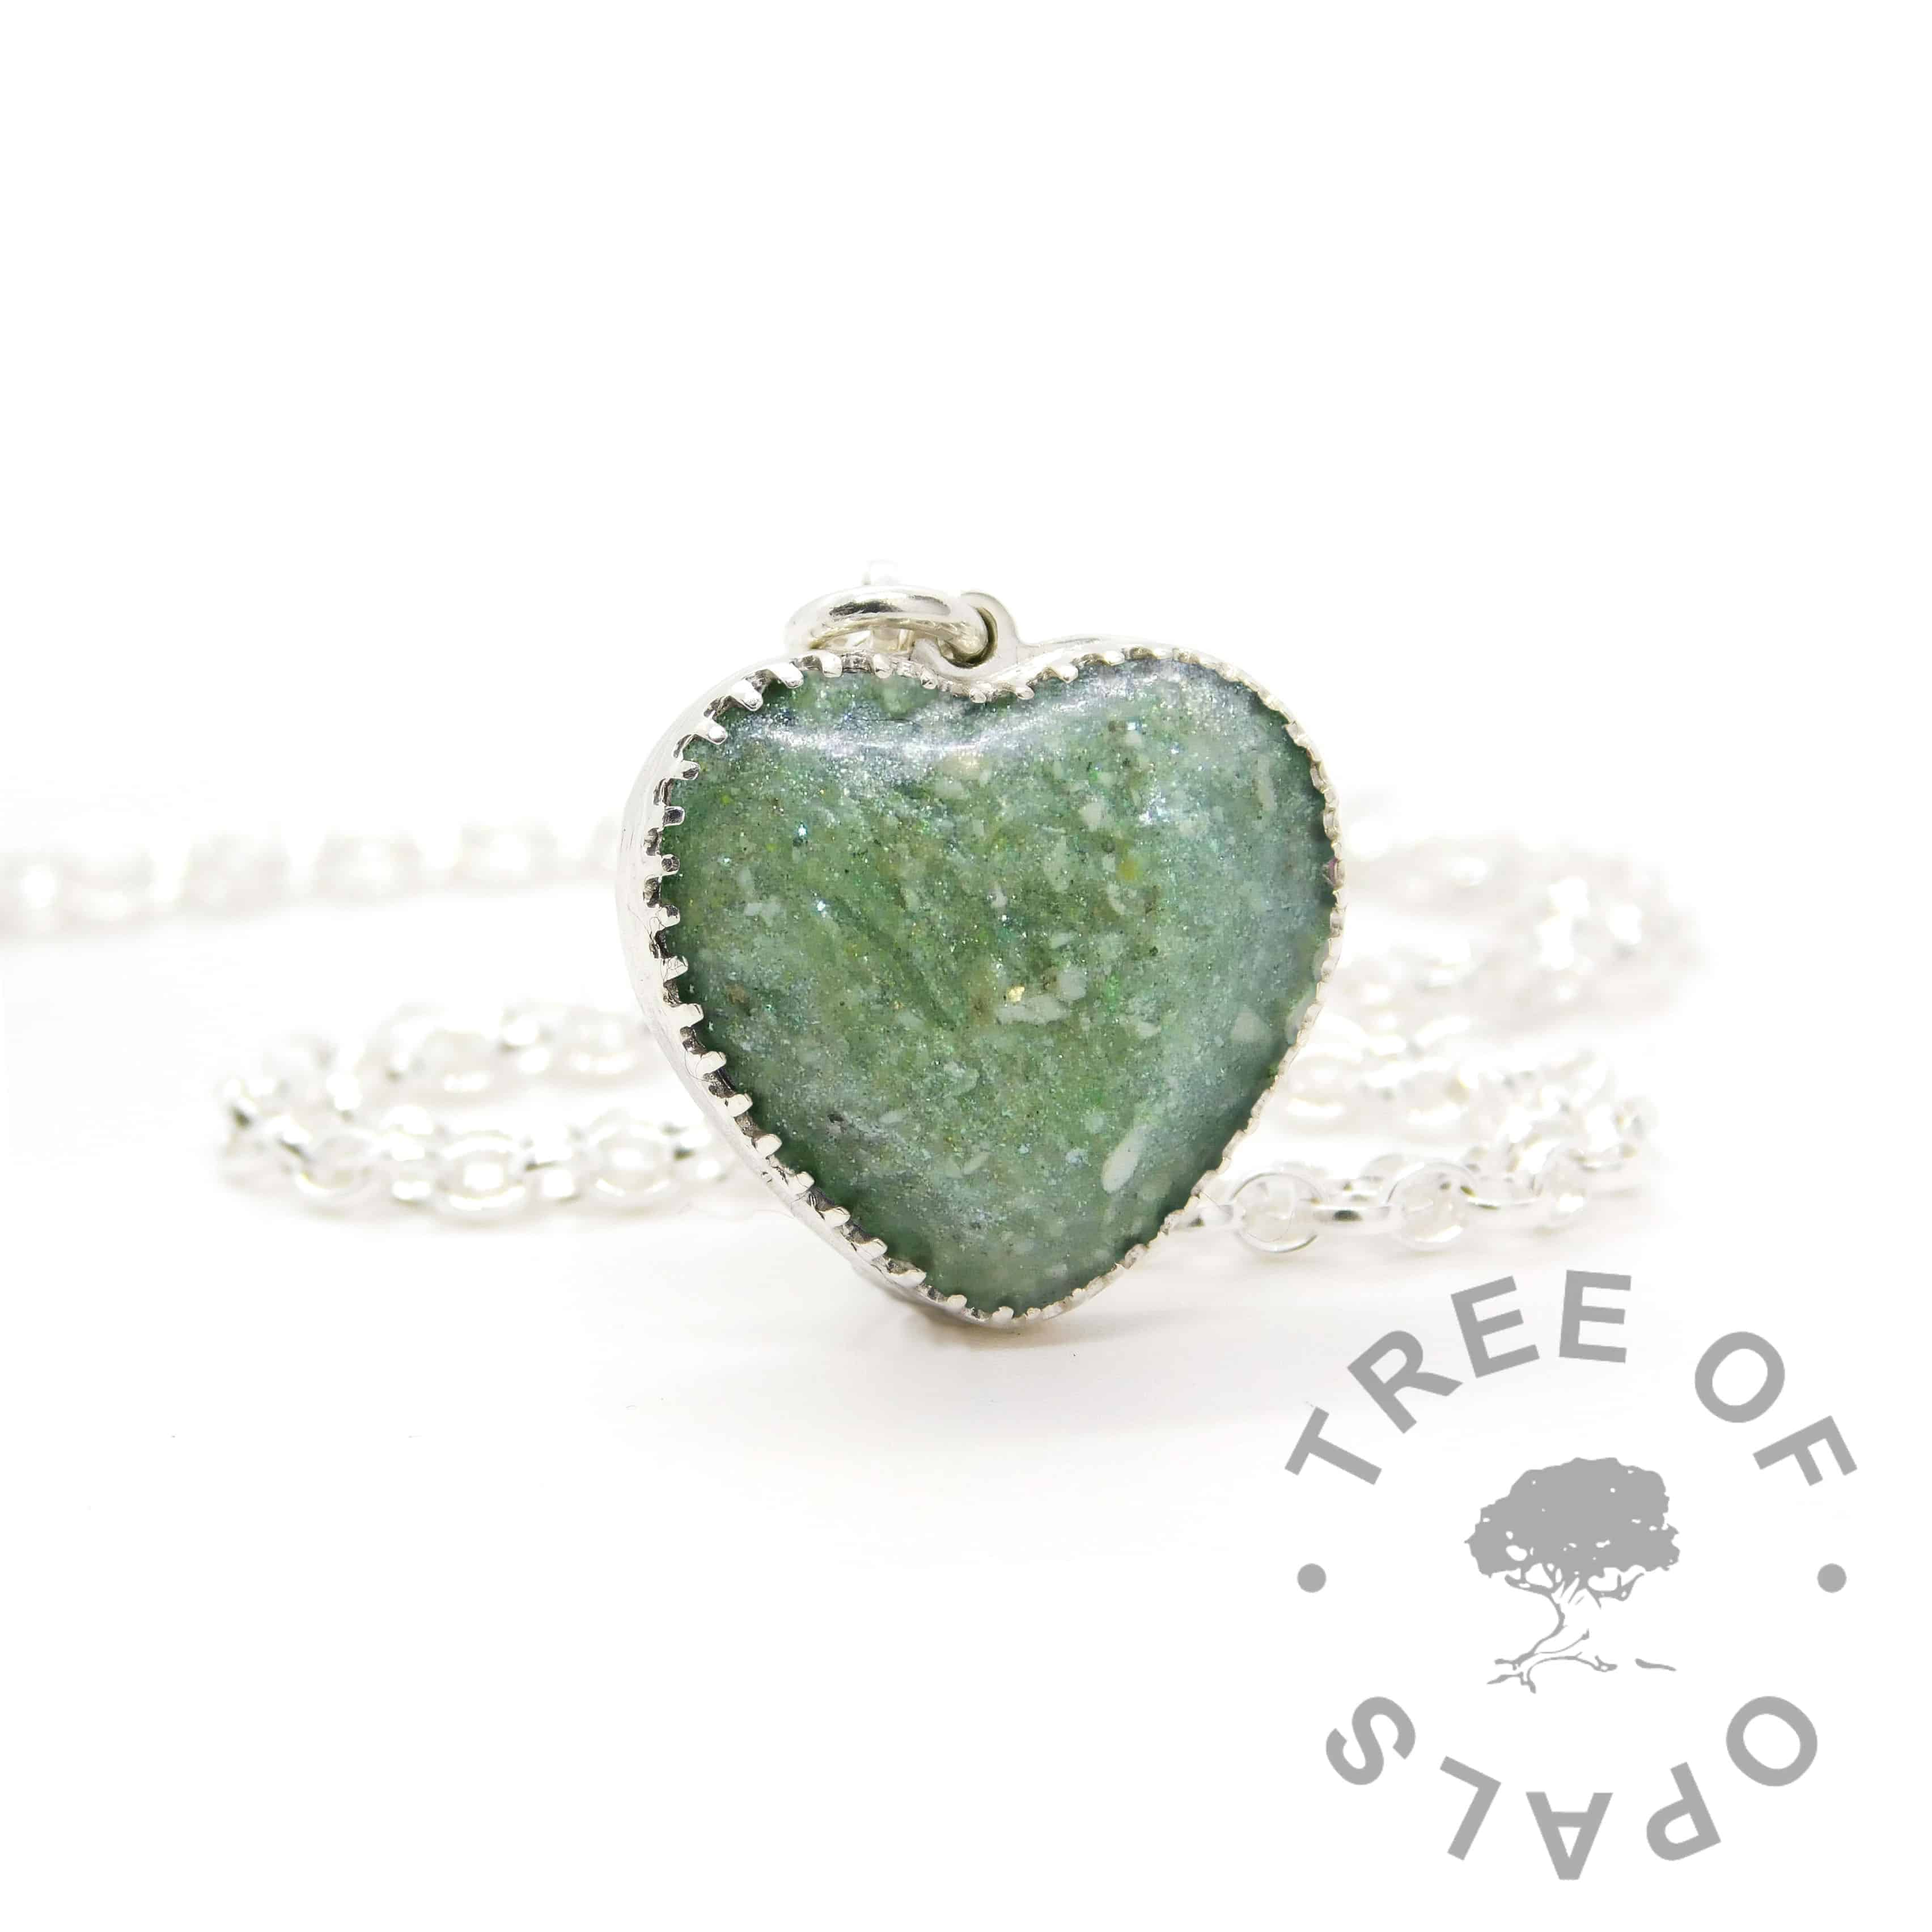 New style heart necklace setting with scalloped edge. Mermaid teal resin sparkle mix, cremation ashes (naturally brown colour ashes), shown with a medium classic chain upgrade (mockup of new setting)